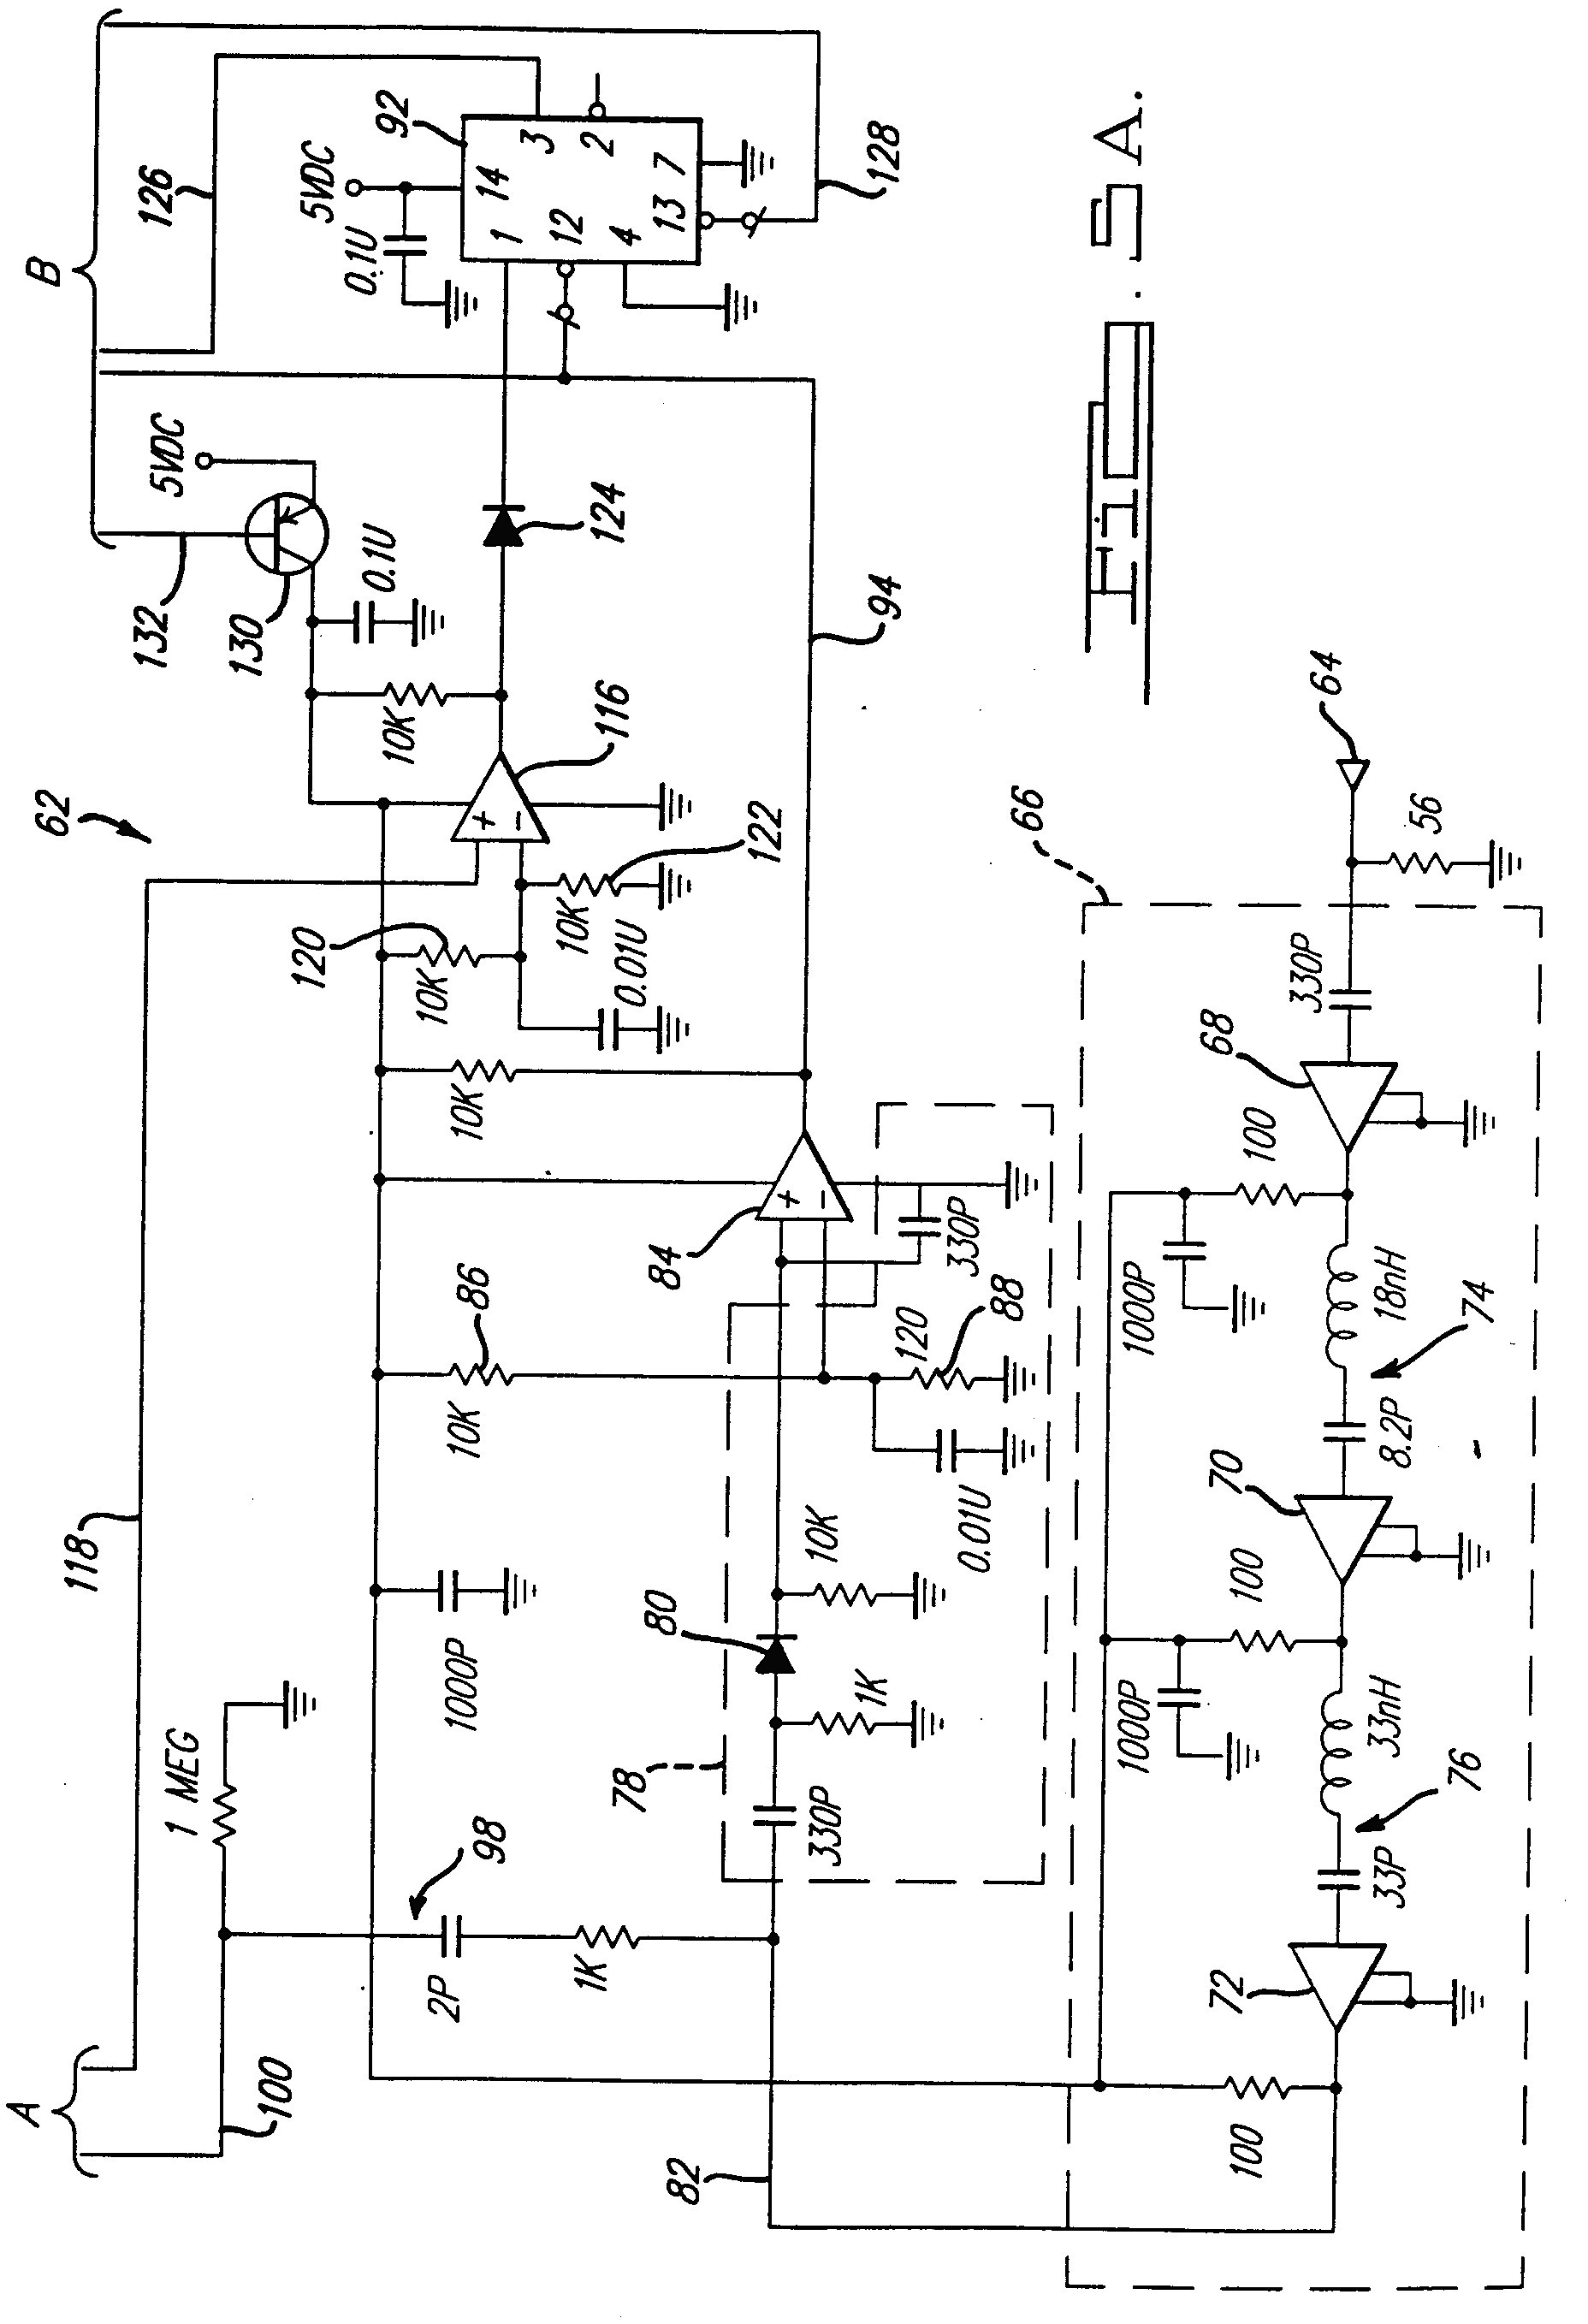 related with link door controls wiring diagram for garage